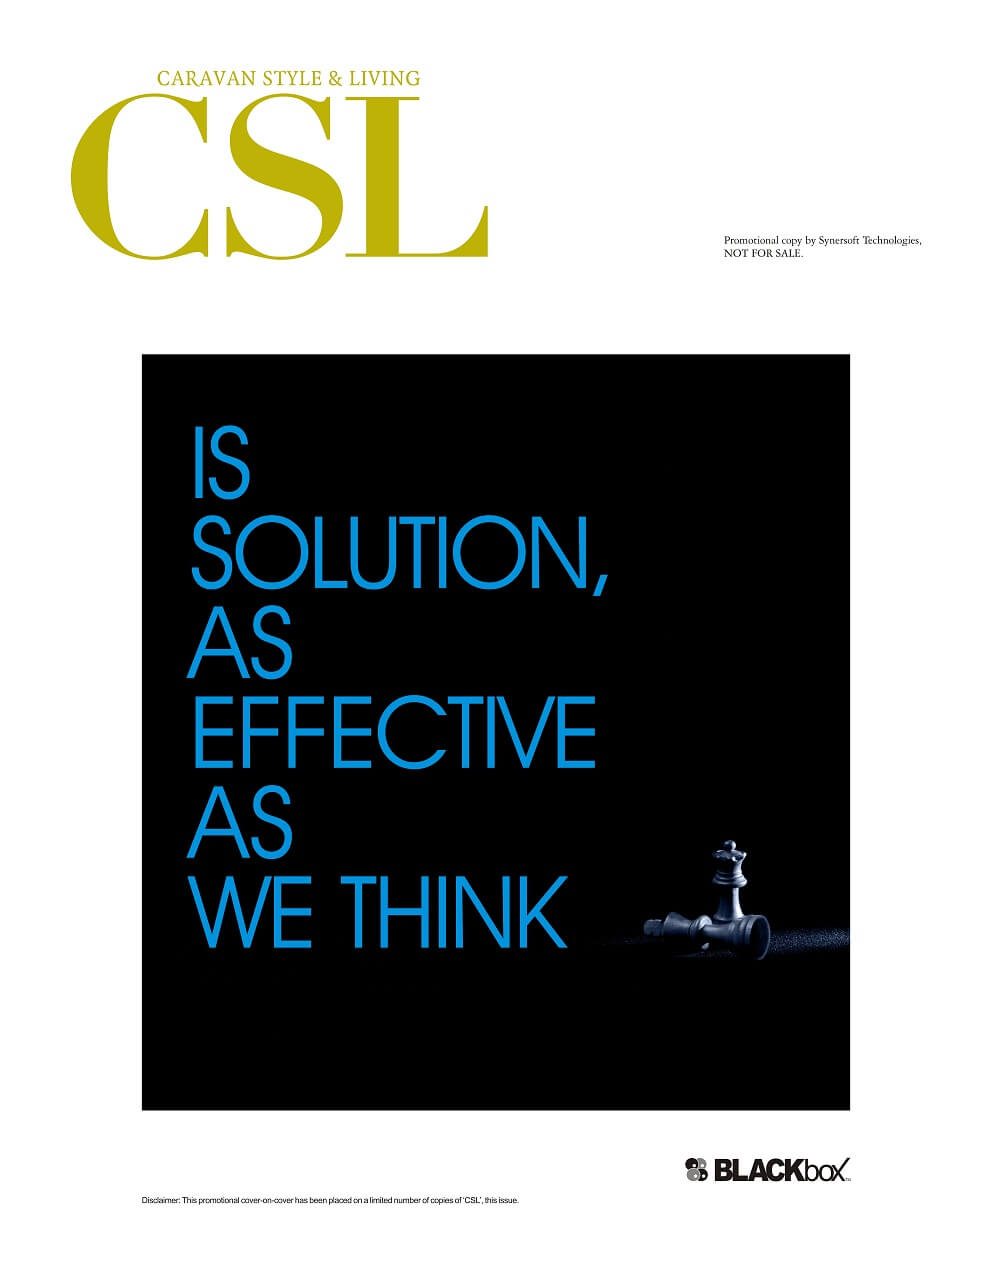 blackbox-conc-csl-may2012-final-cover